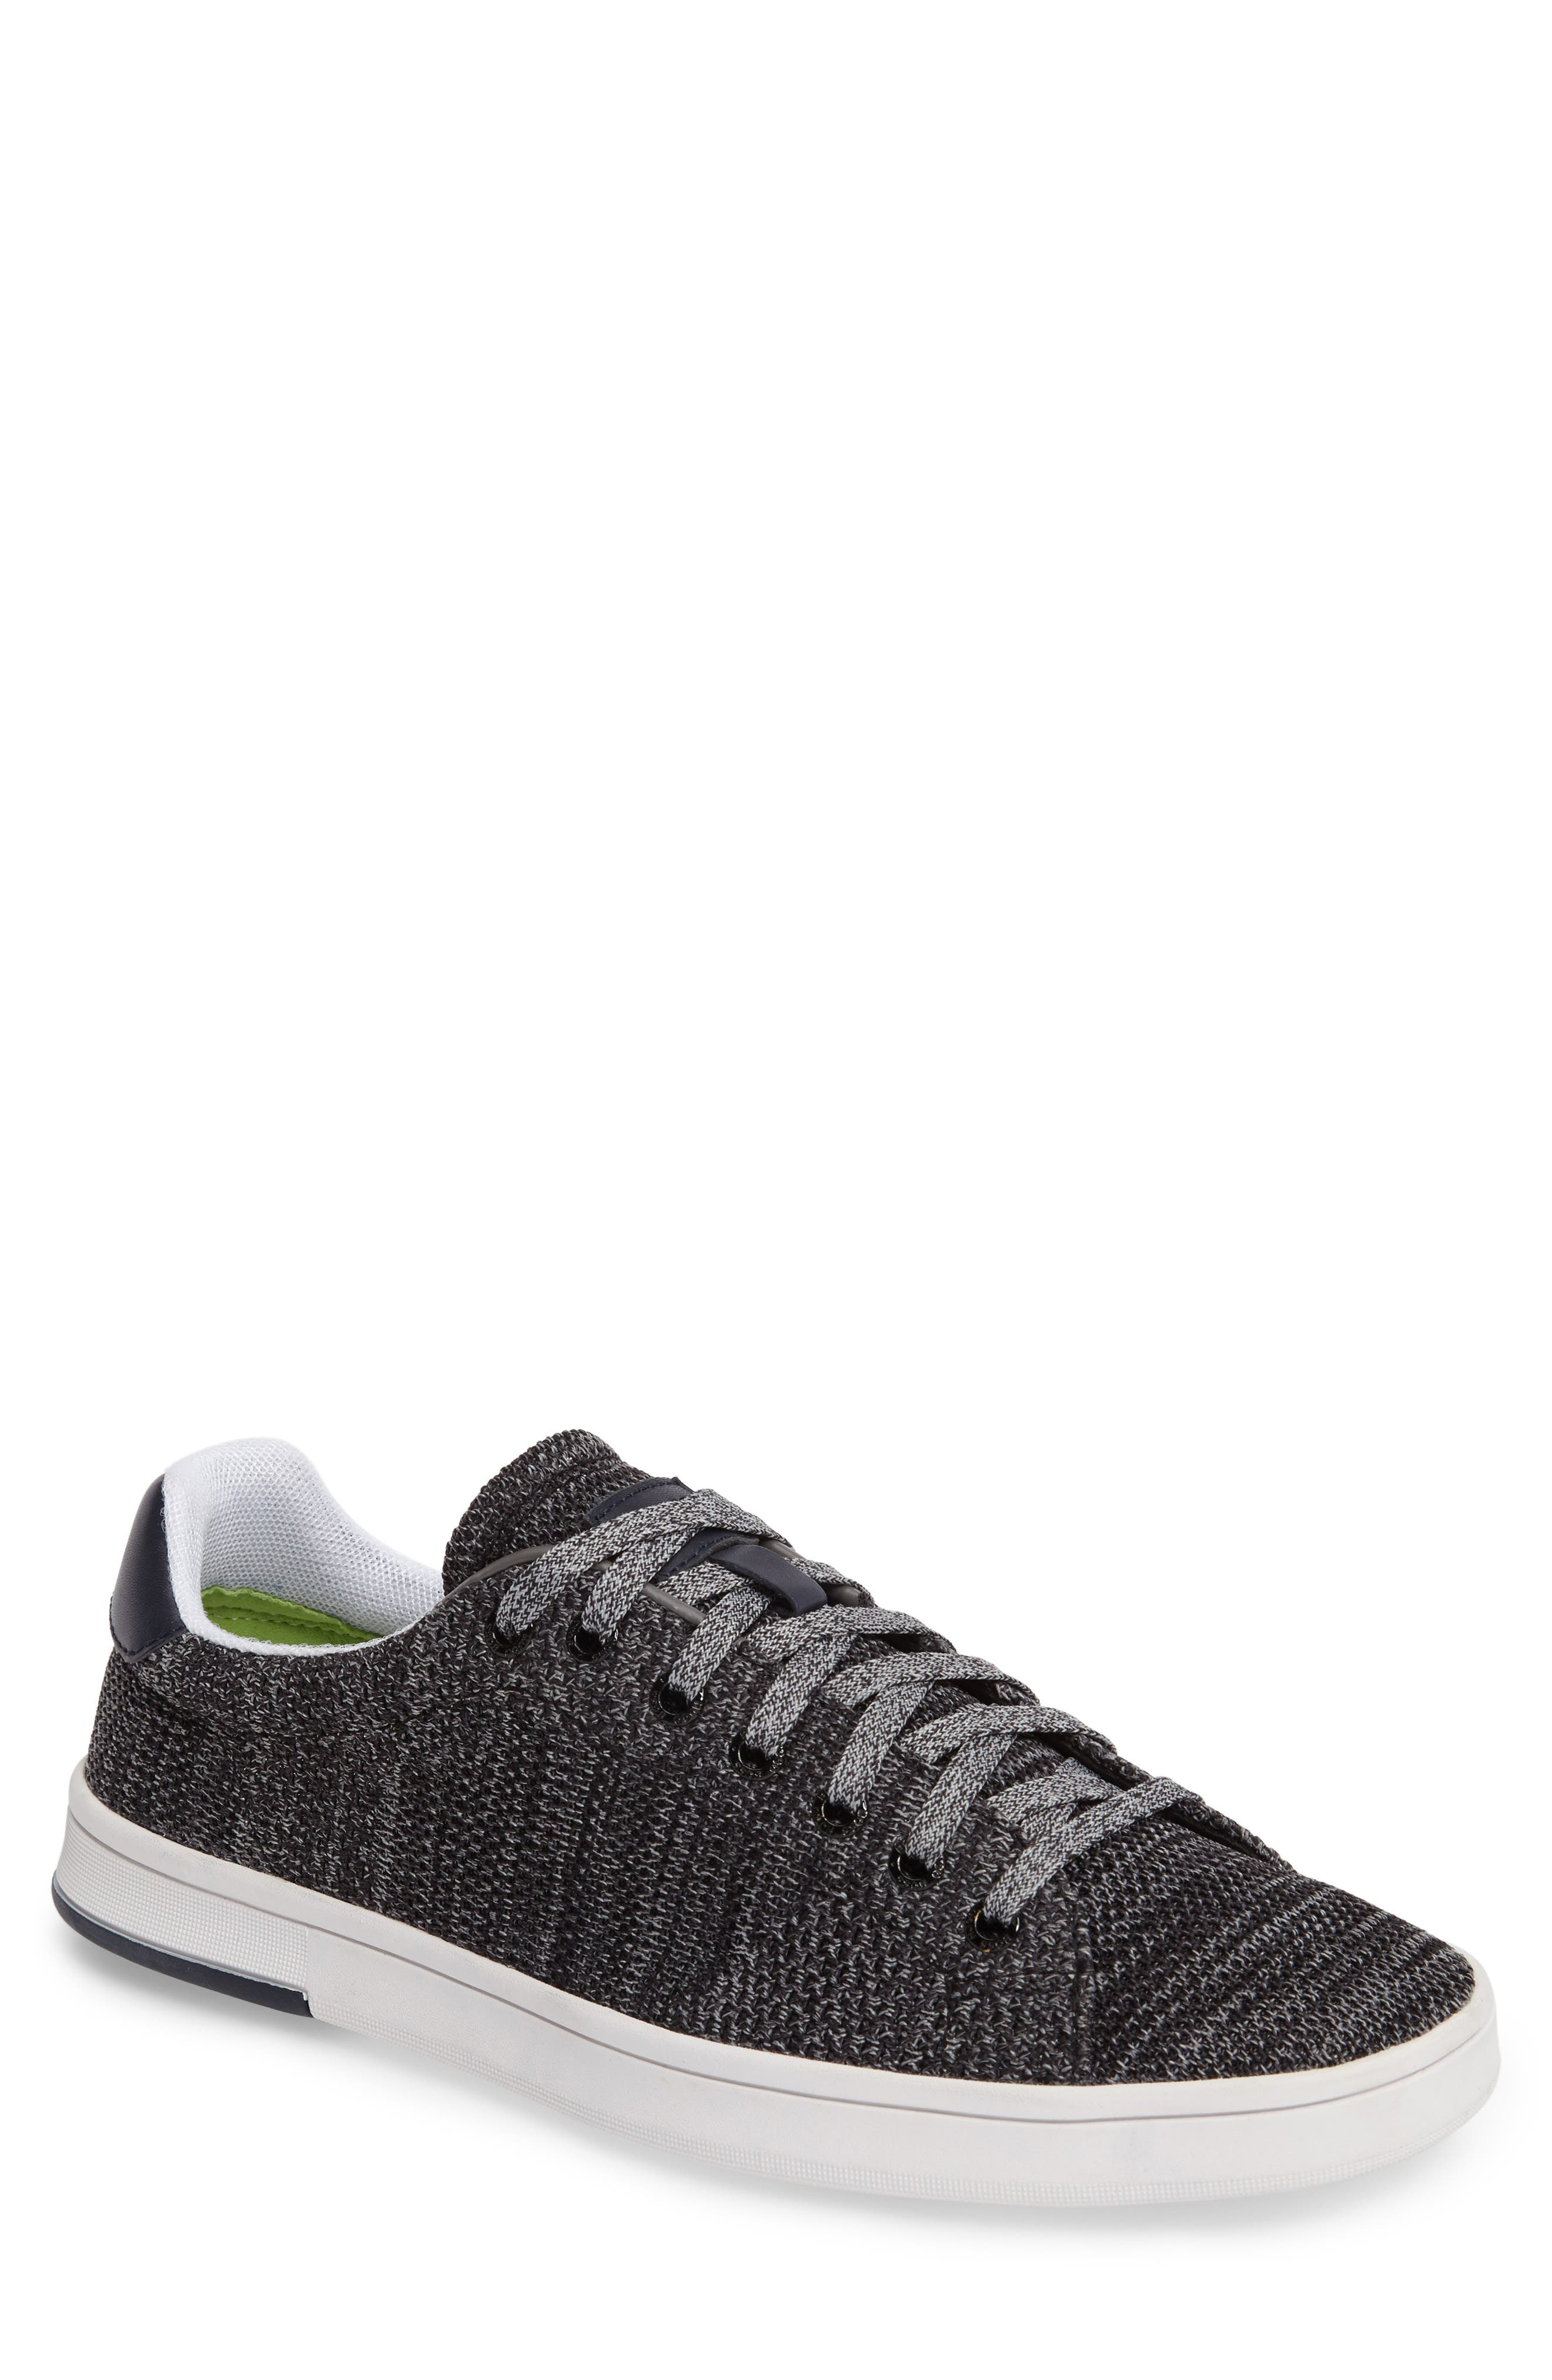 BOSS Green Rayadv Sneaker (Men)